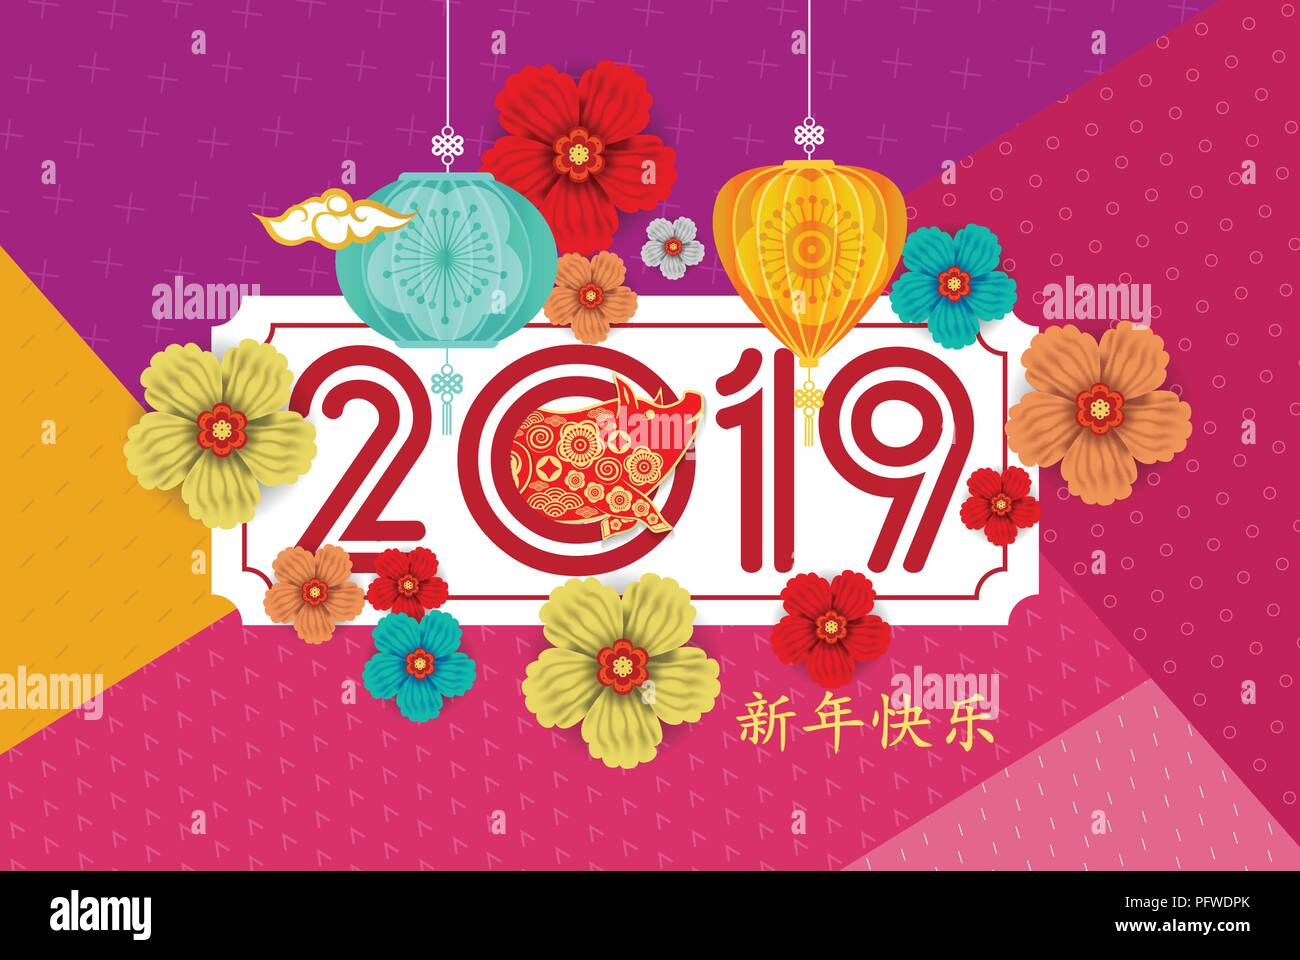 chinese new year of pig design 2019 graceful floral paper art style on beige background chinese characters mean happy new year